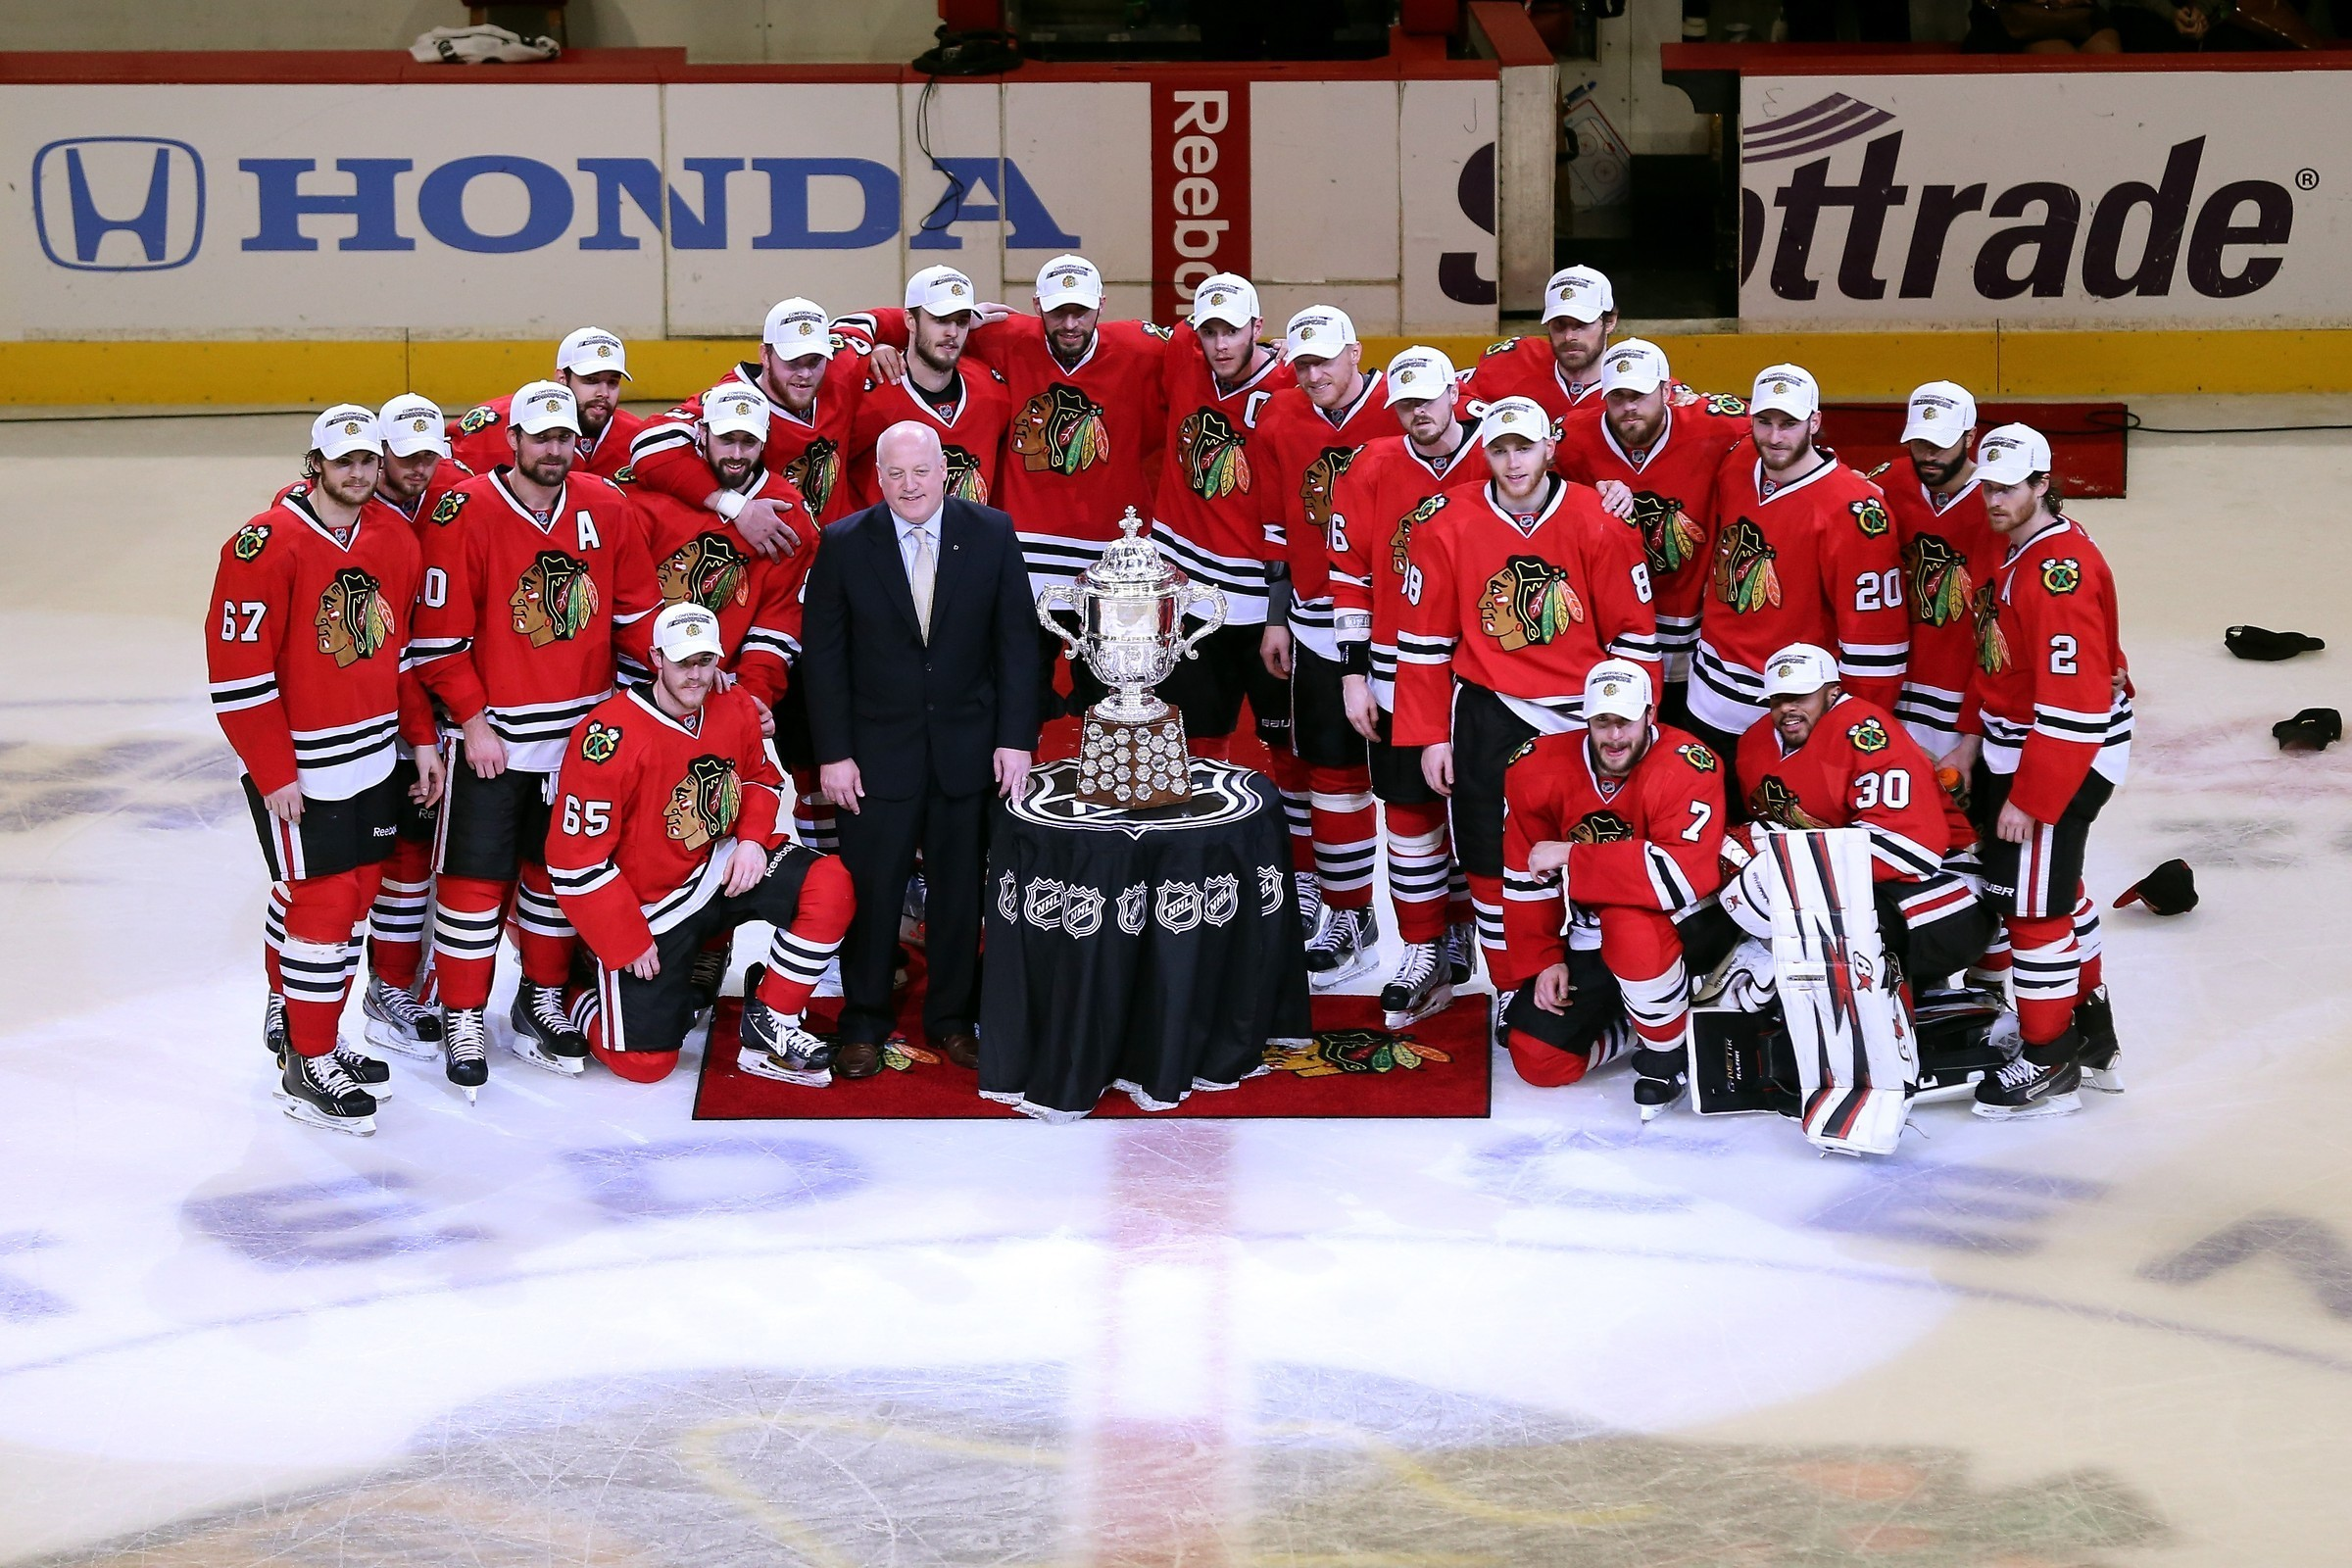 Sport Wallpaper Chicago Blackhawks: Chicago Teams Wallpaper (66+ Images